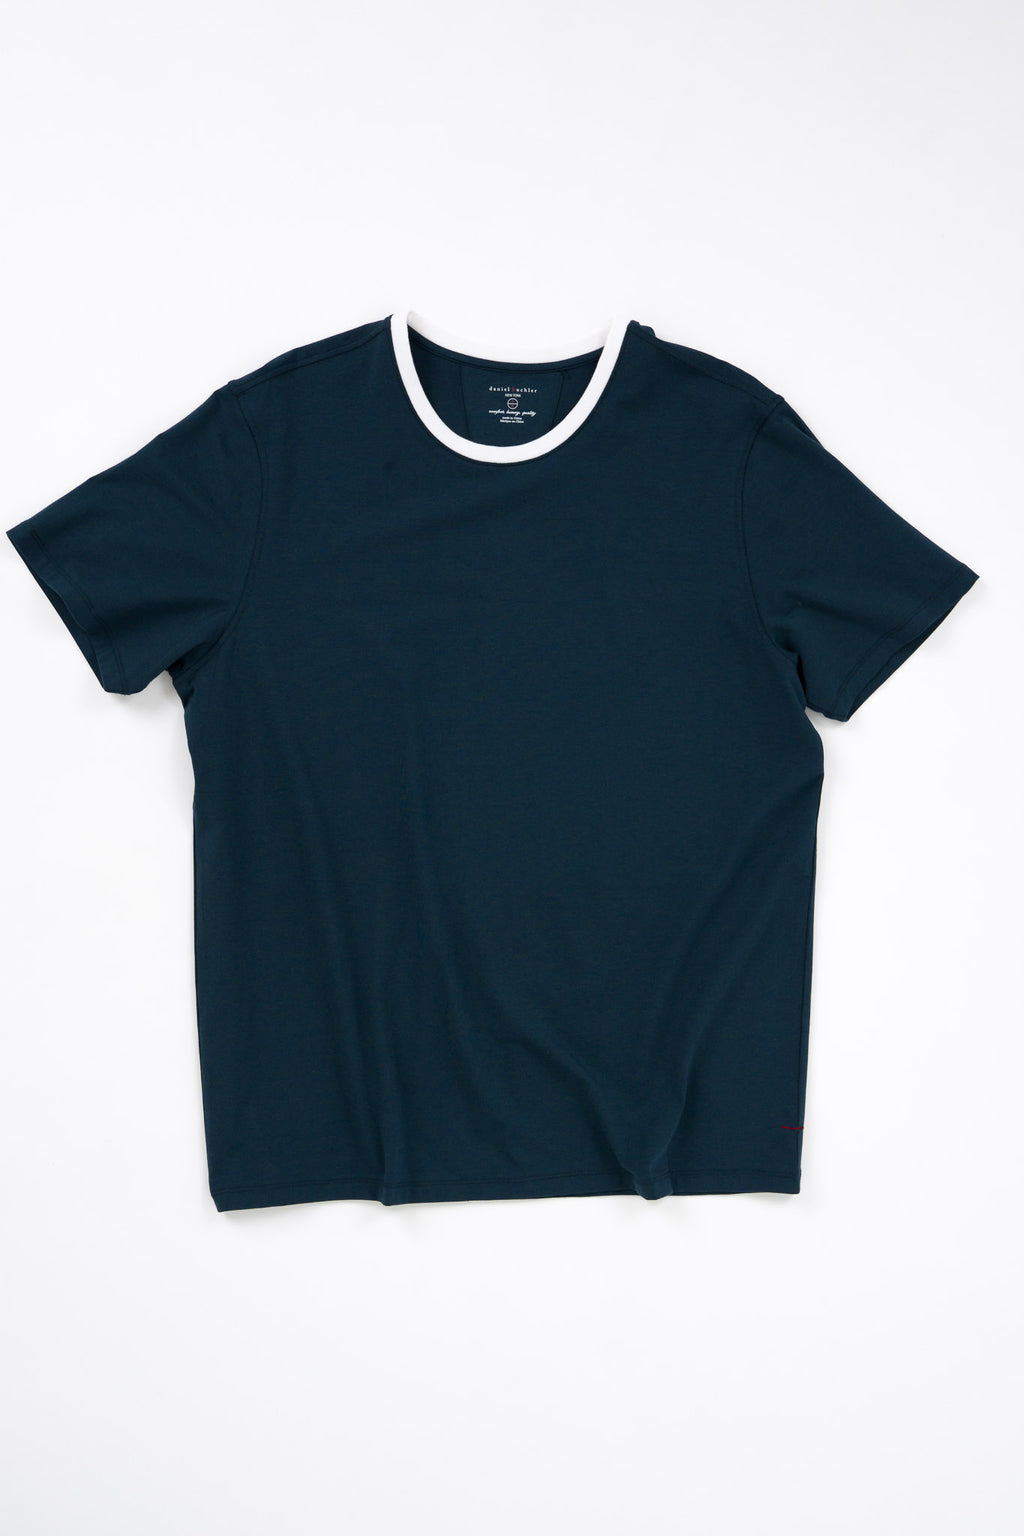 Cotton/Modal Solid Crewneck